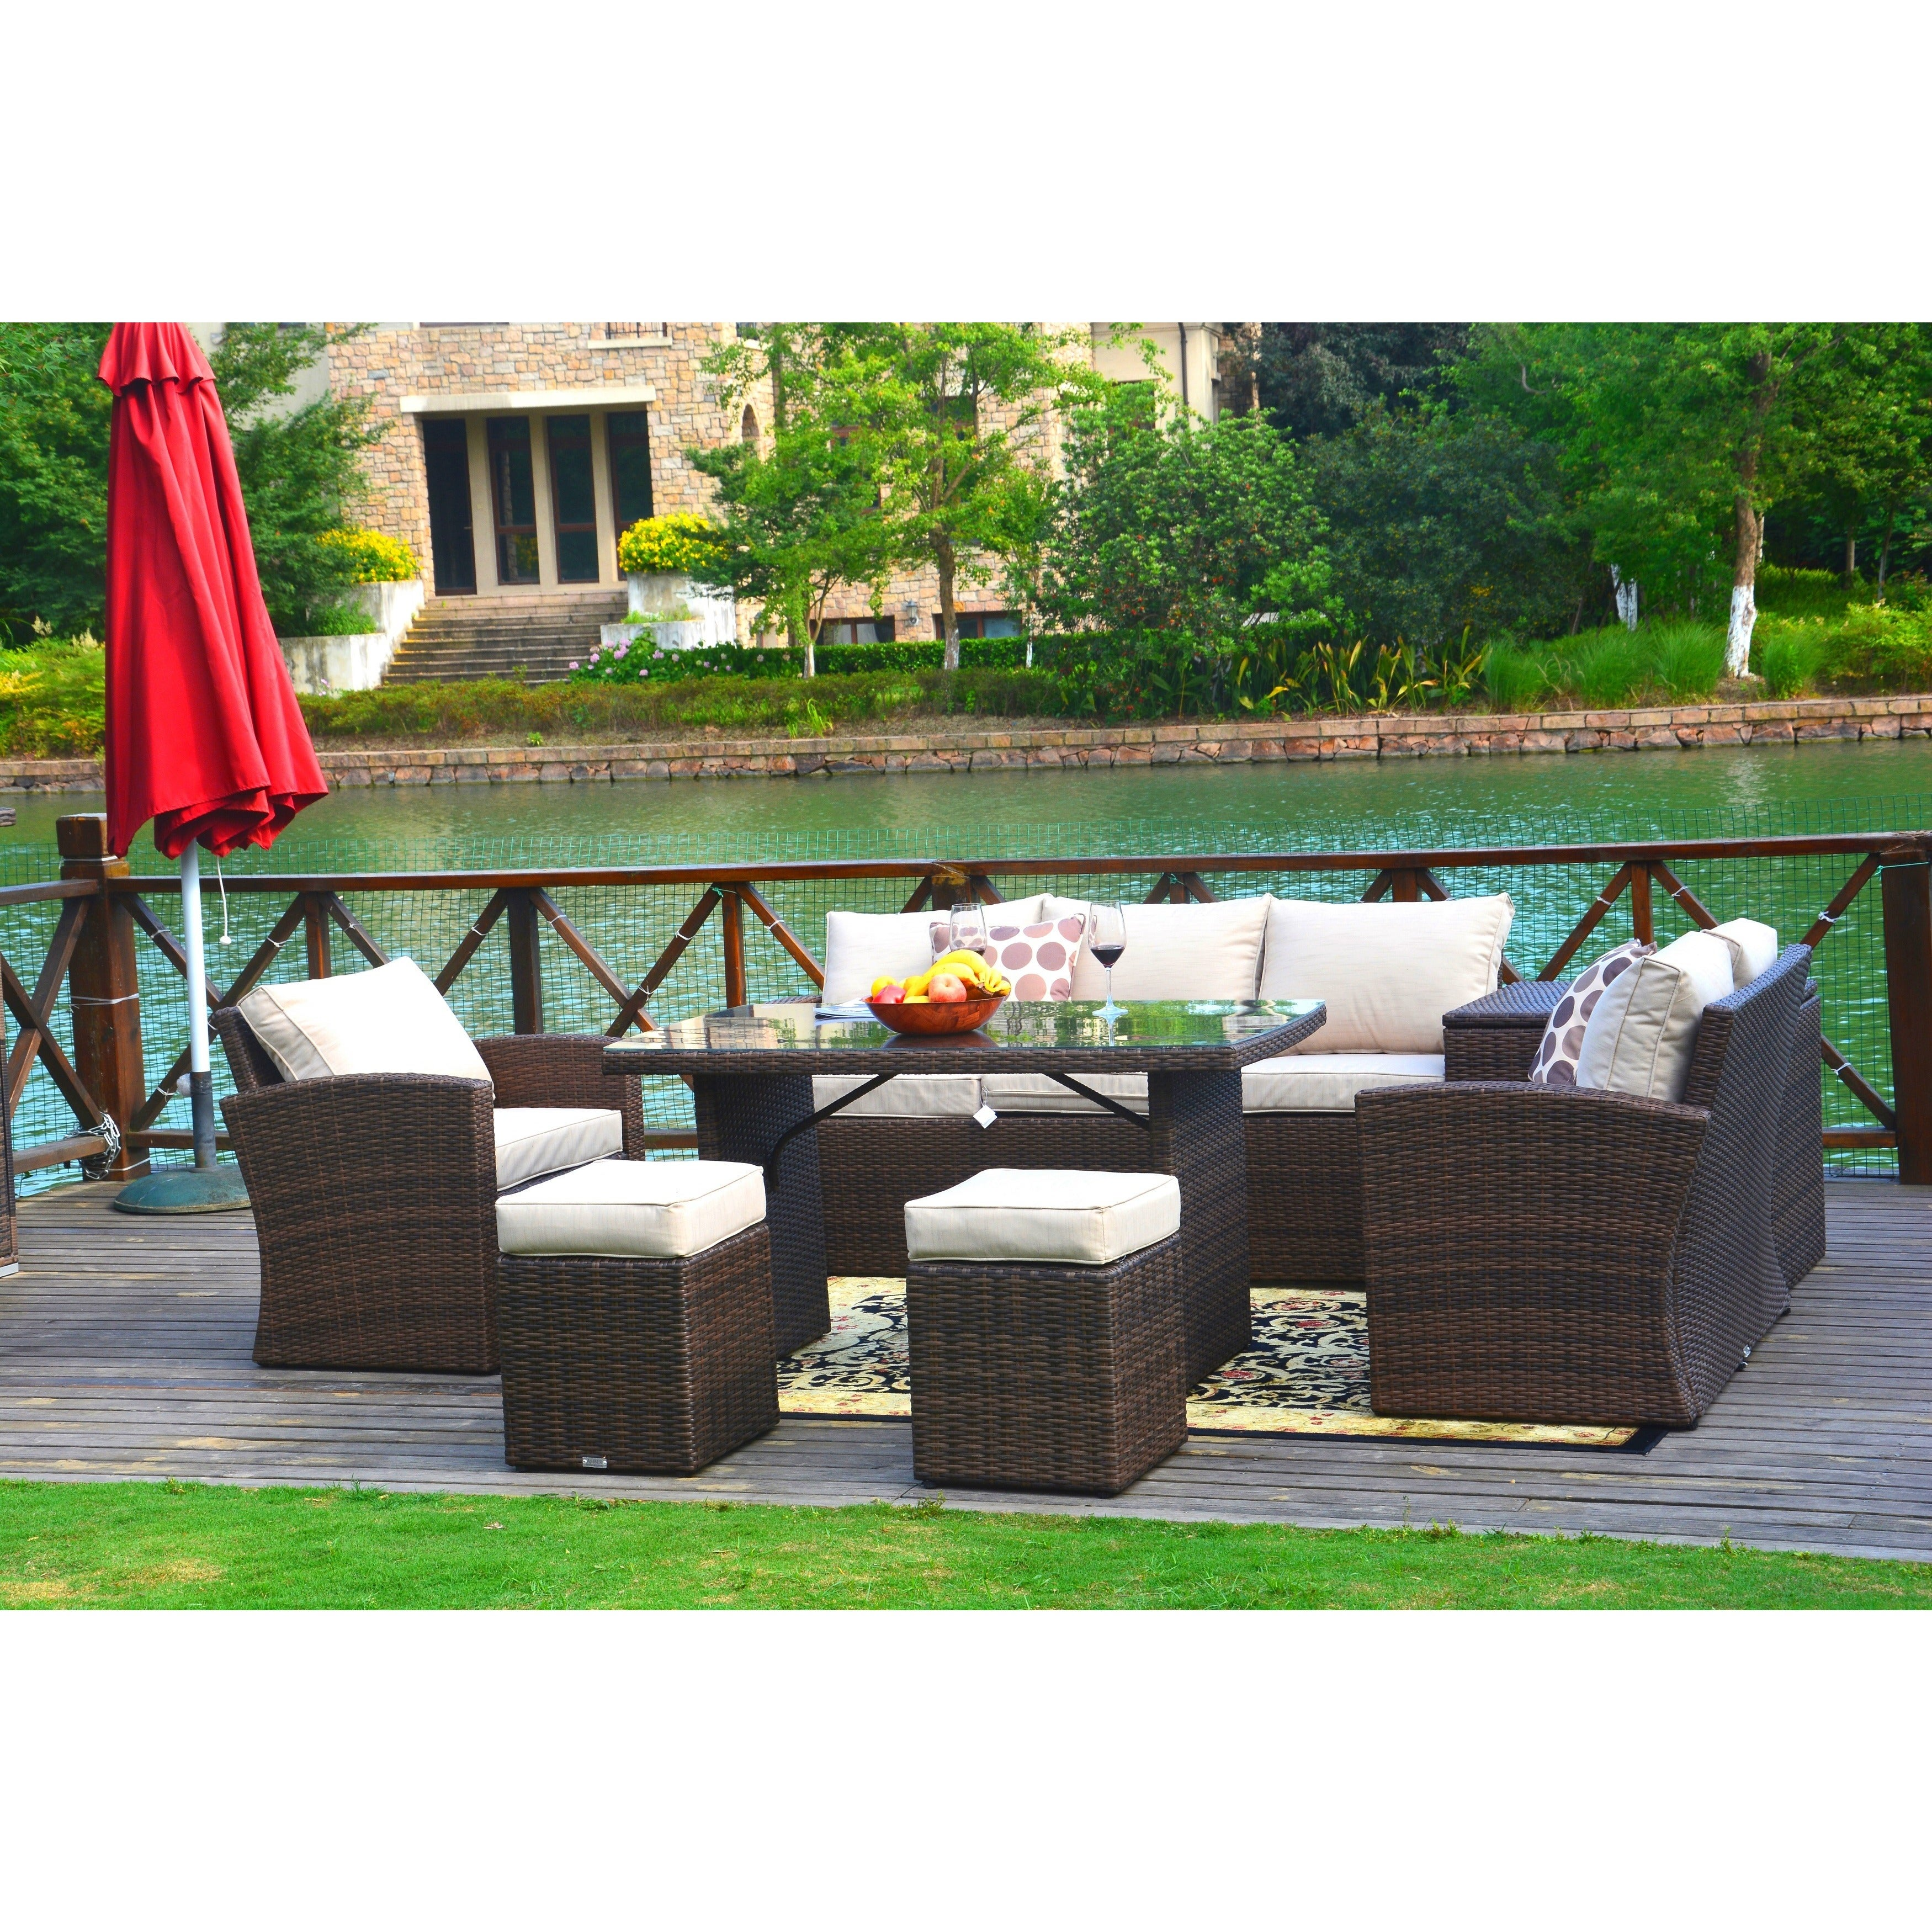 skucarlisle piece carlisle loveseats wicker outdoor tangerine sectionals set patio sofas furniture